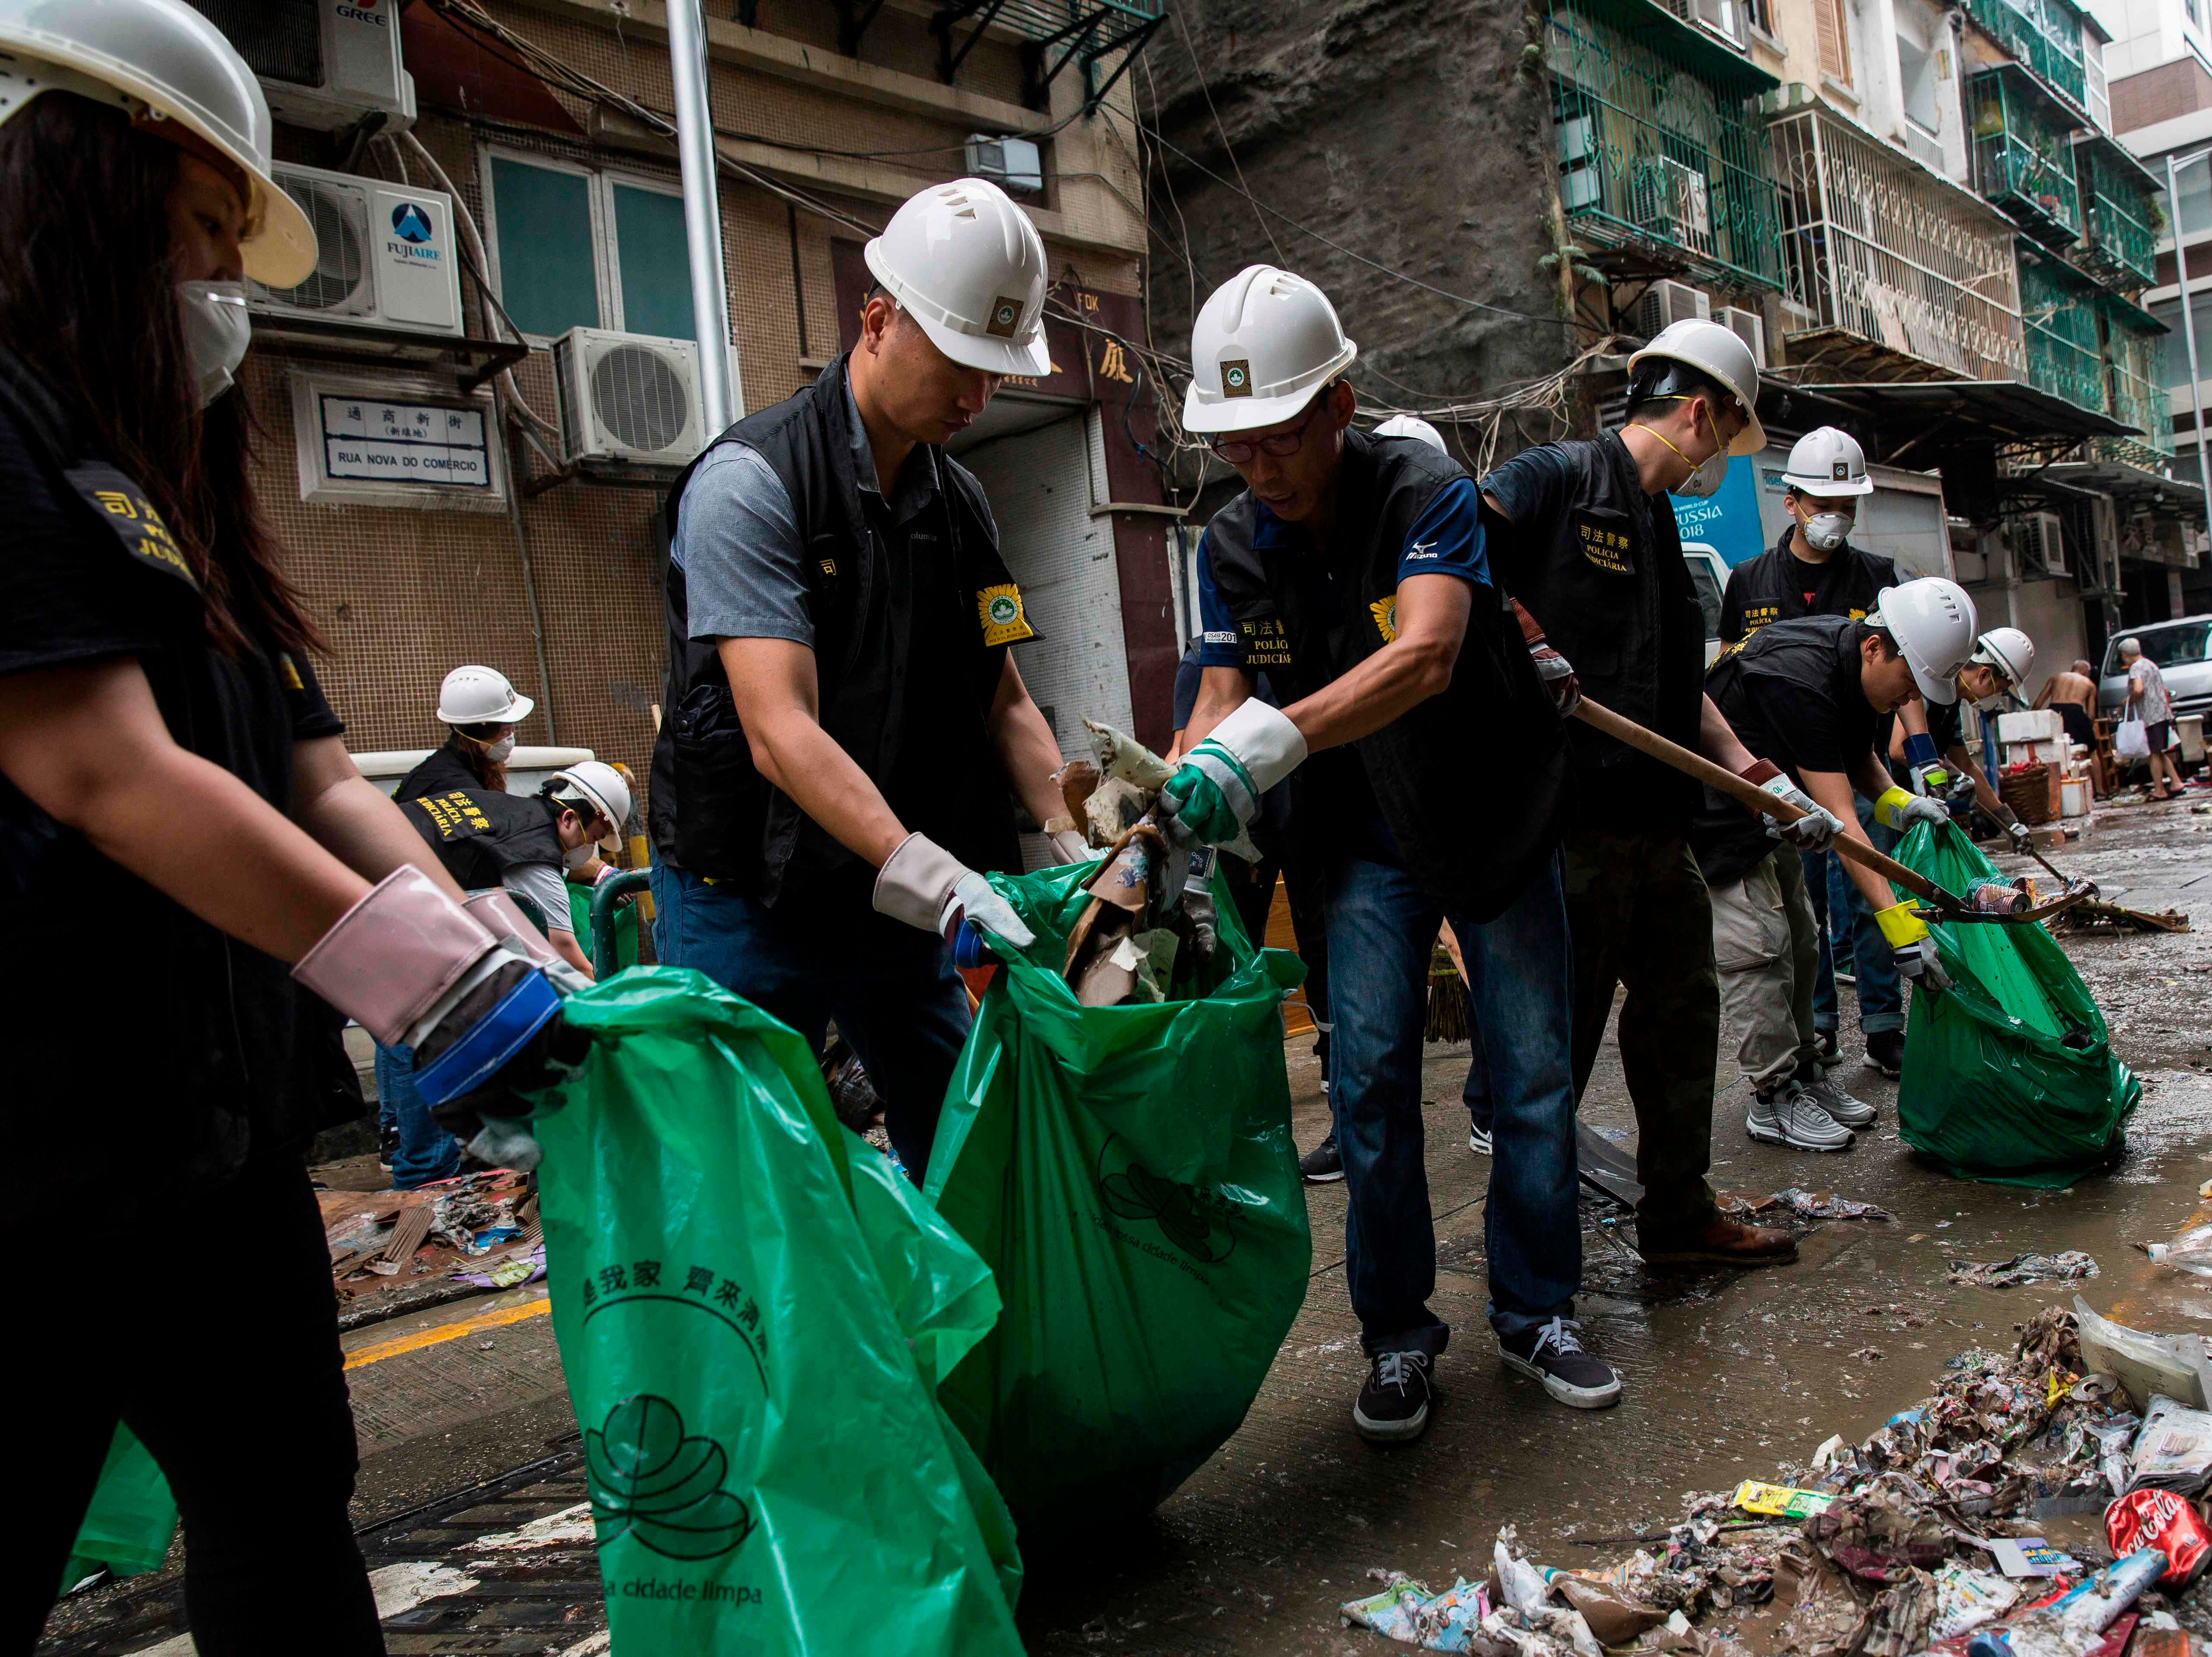 Police clear rubbish and debris from a street a day after Typhoon Mangkhut hit Macau on Sept. 17, 2018.